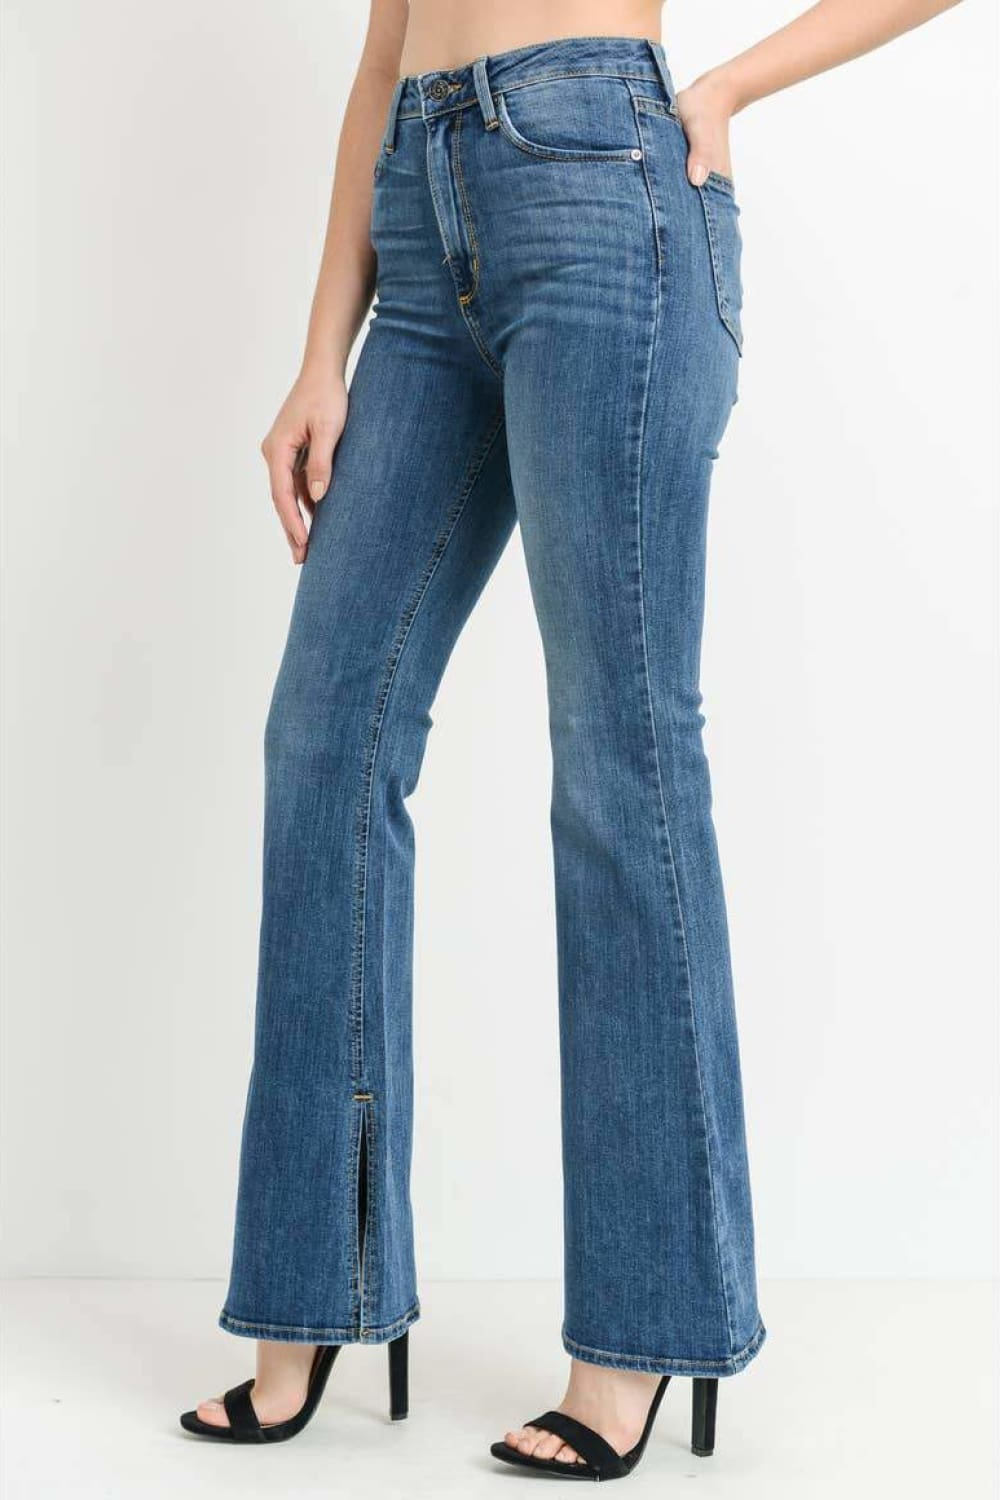 JUST BLACK DENIM High Rise Side Slit Flare Jeans - Jeans - JUST BLACK DENIM